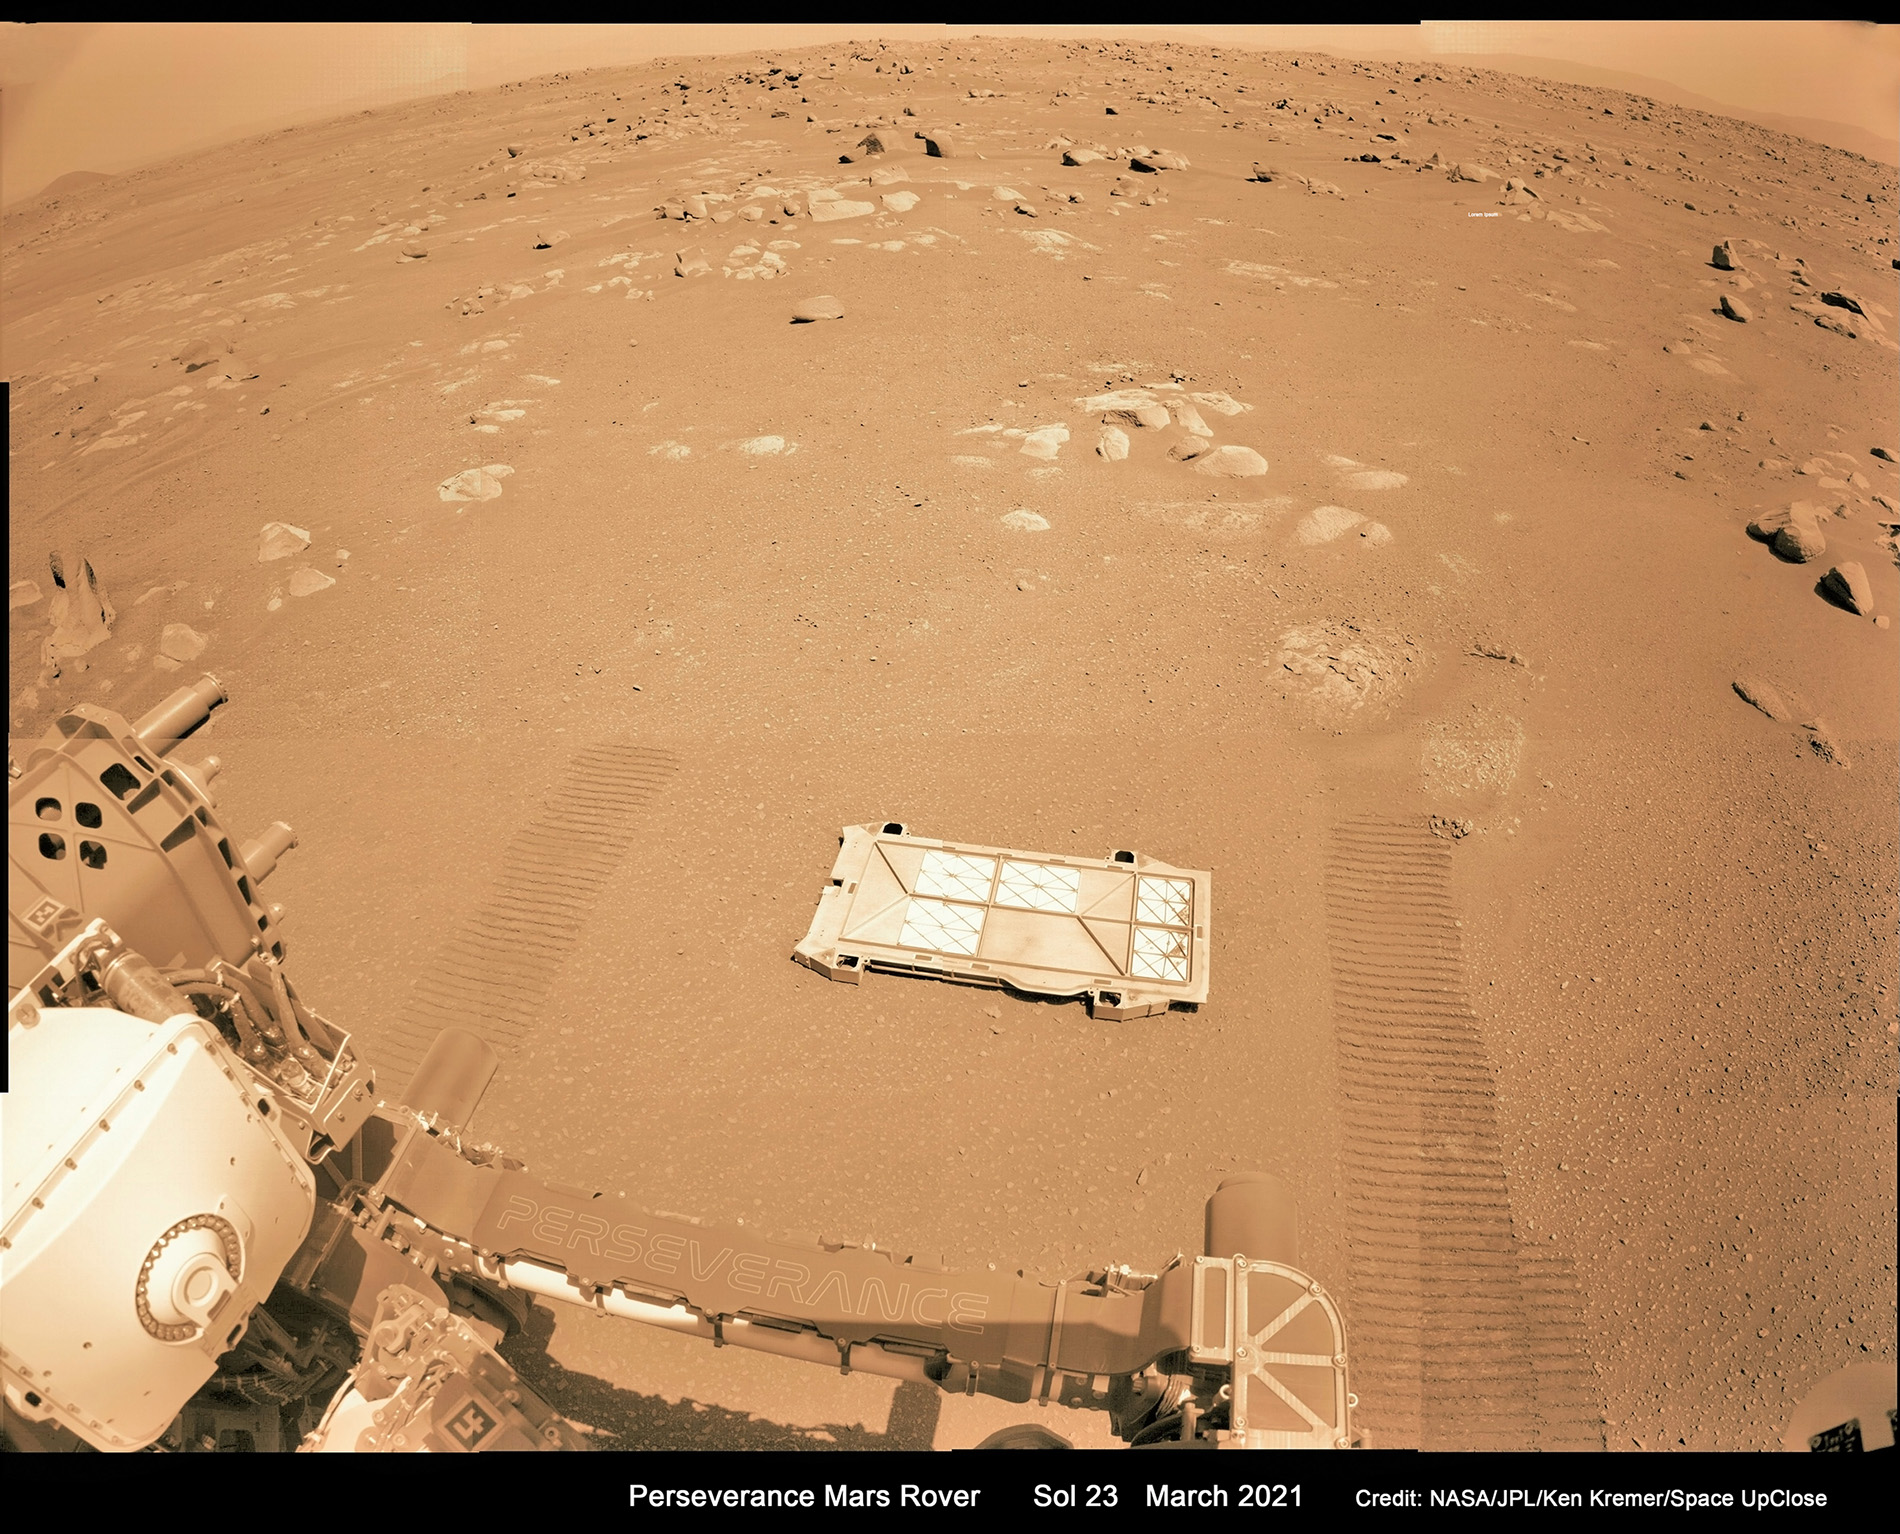 Perseverance Rover Drops Belly Pan Cover from Sample Caching System onto Mars: Mosaic